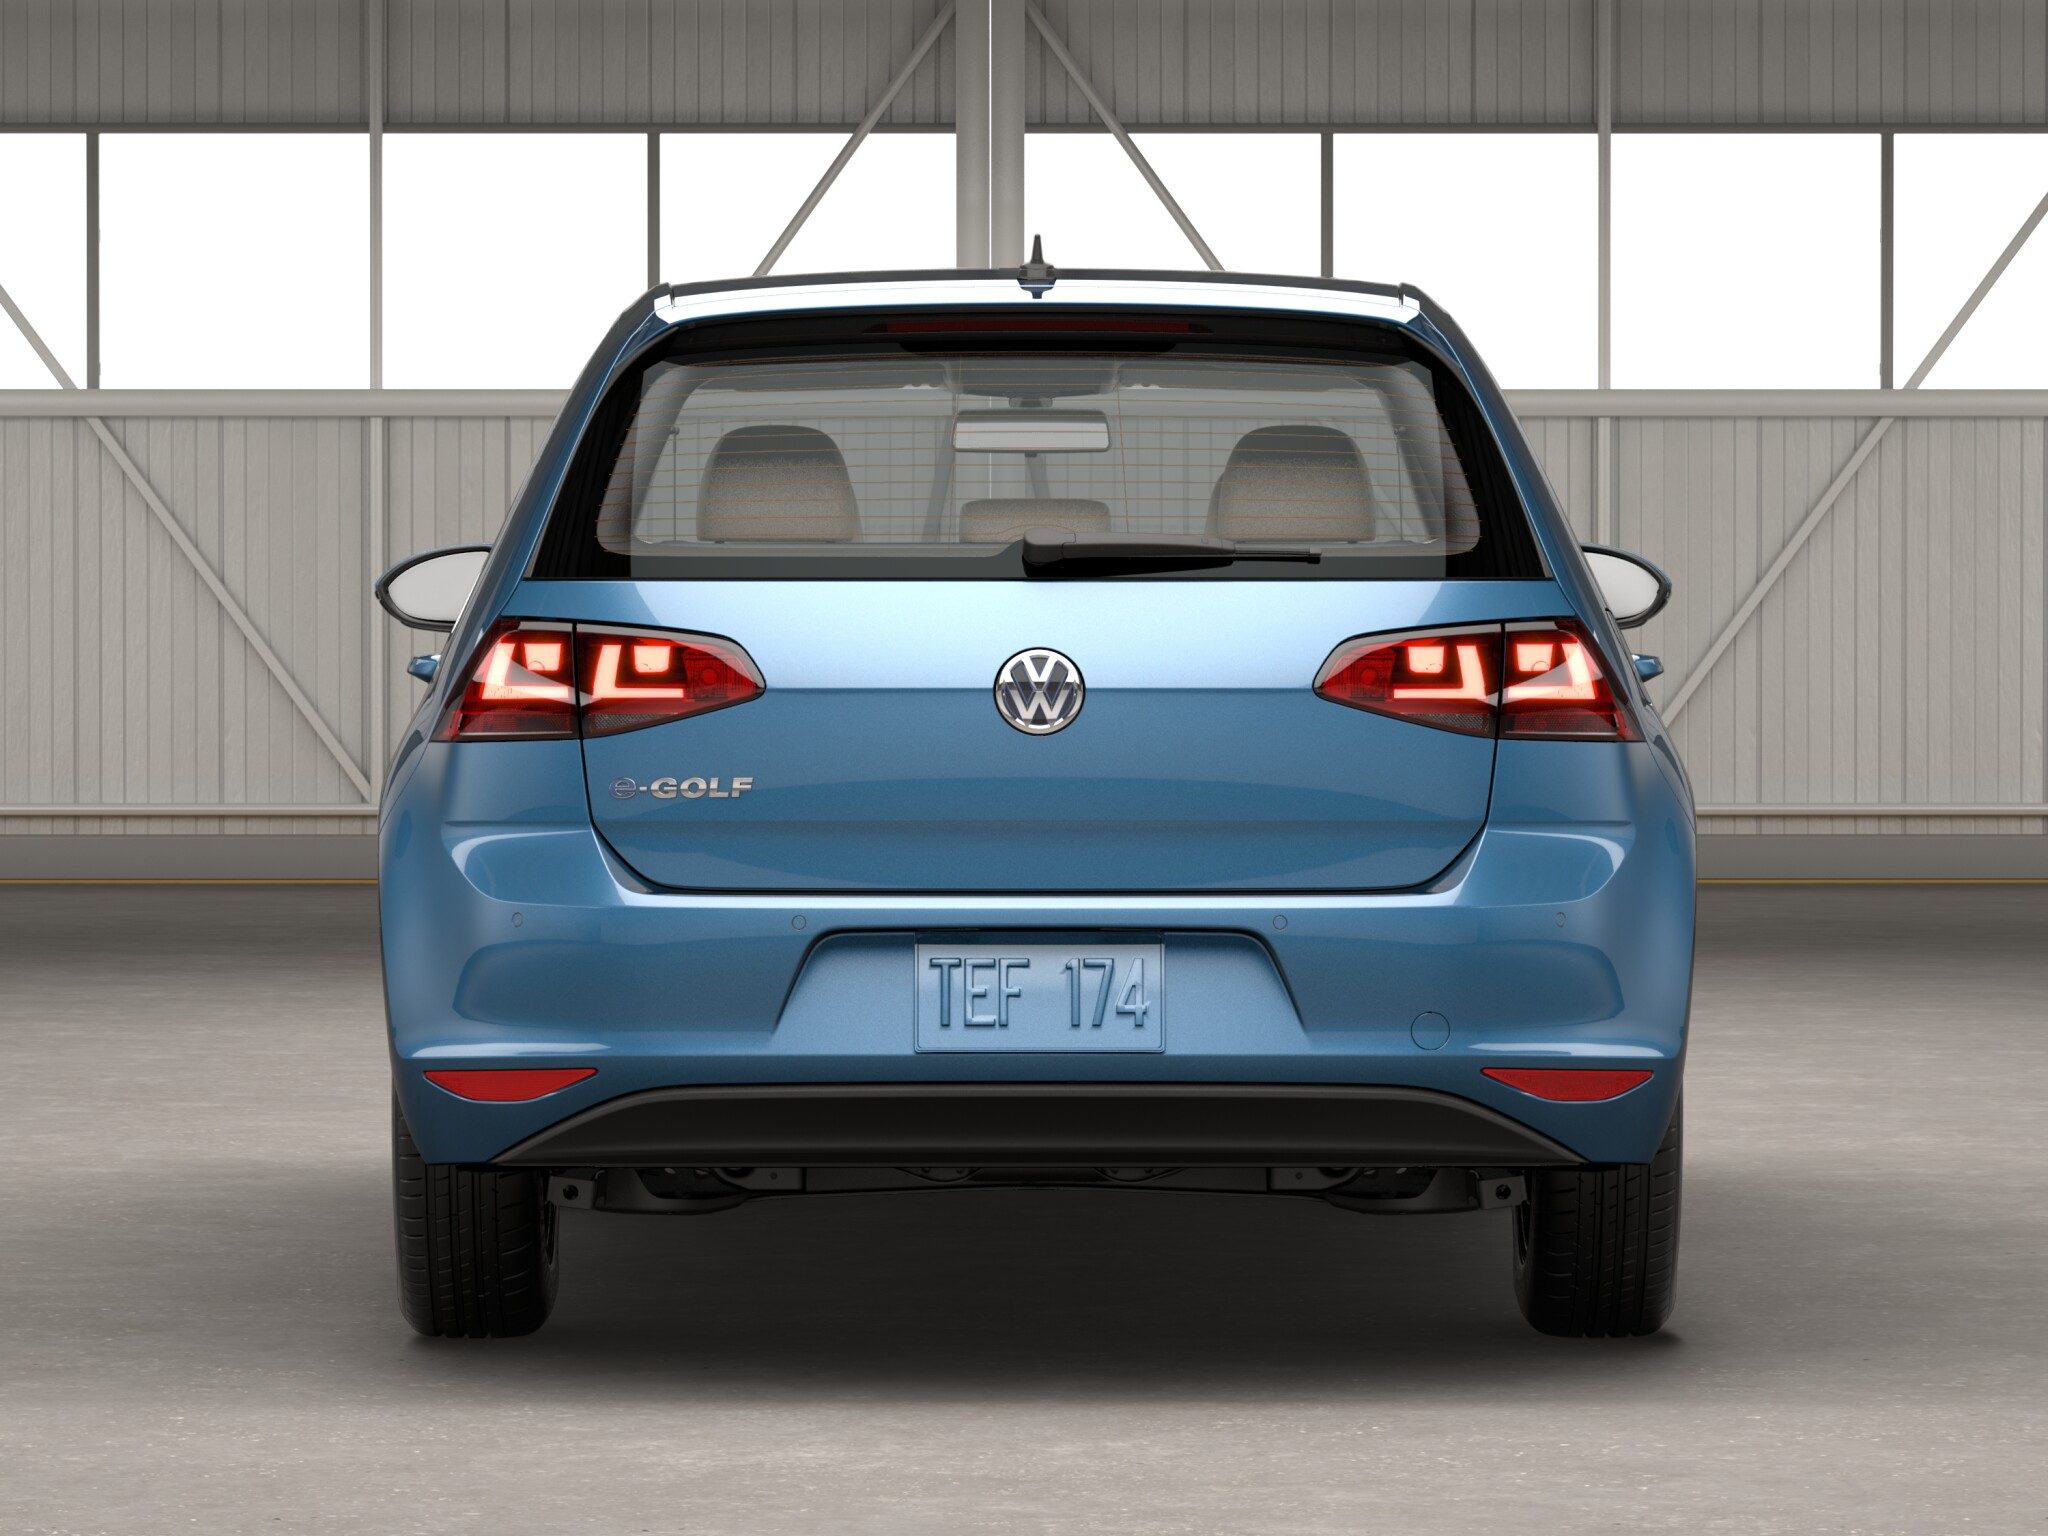 2016 Volkswagen E Golf Rear End View (Photo 9 of 11)